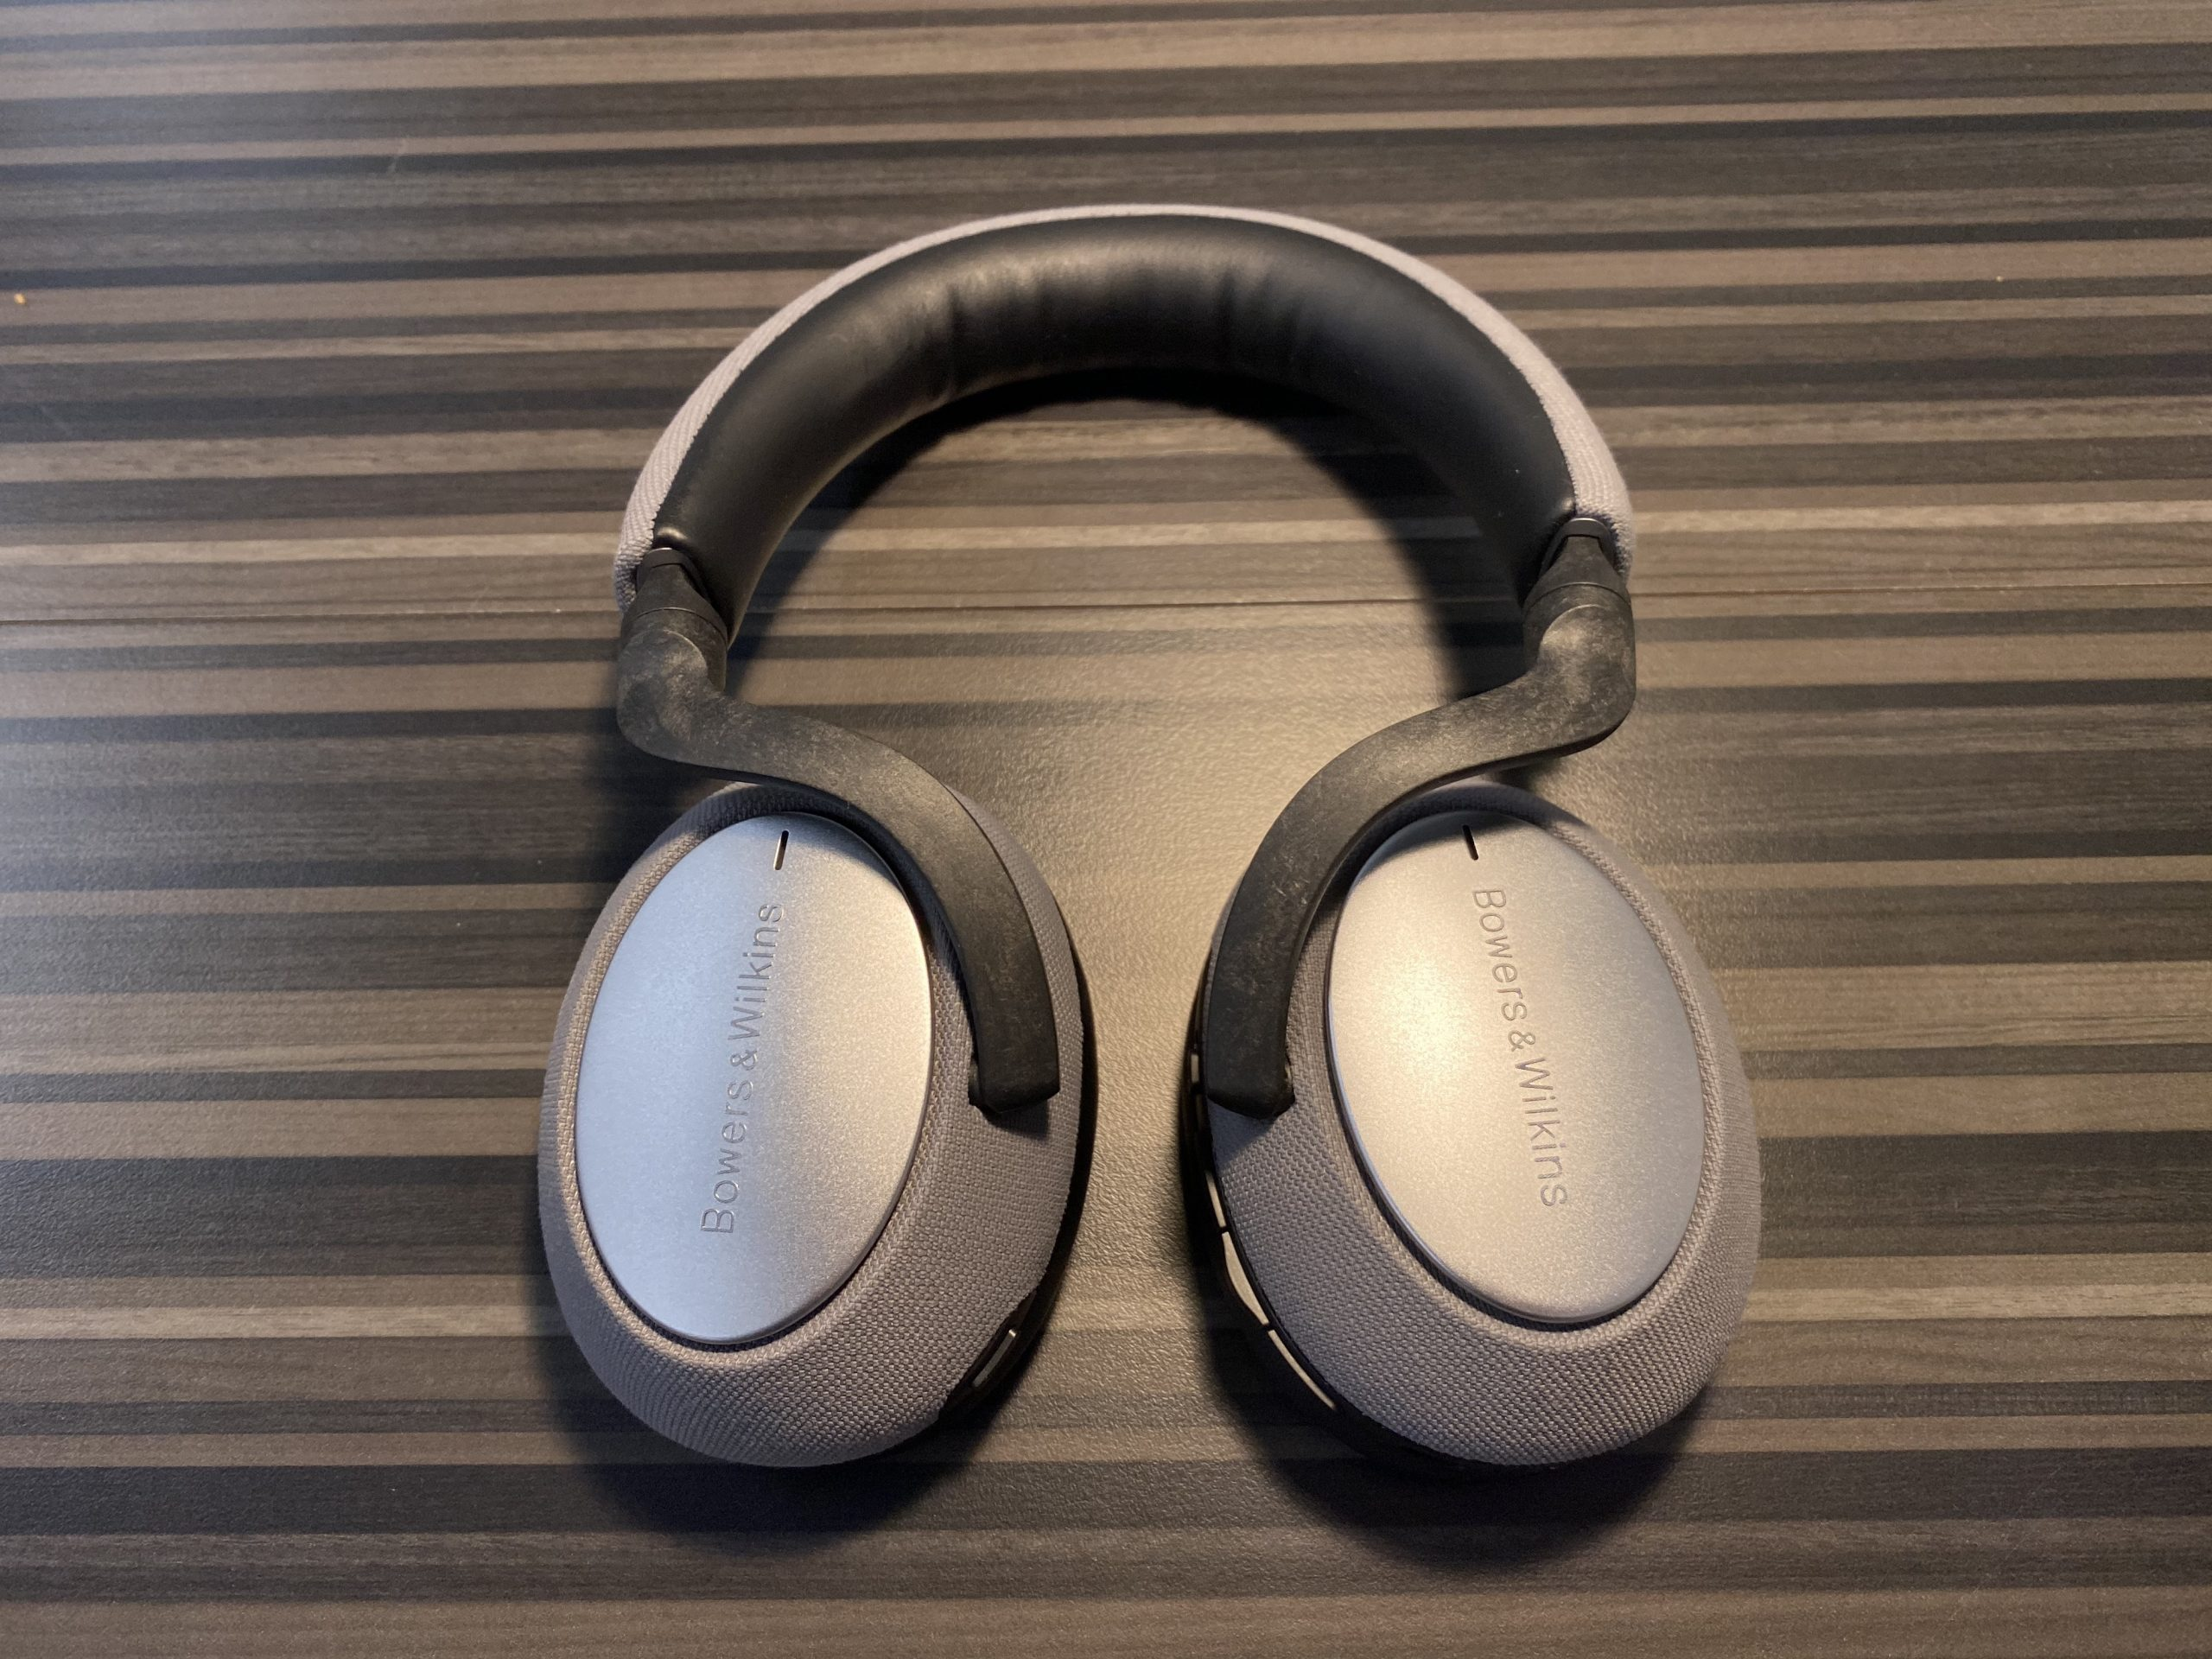 Bowers & Wilkins PX7 recension